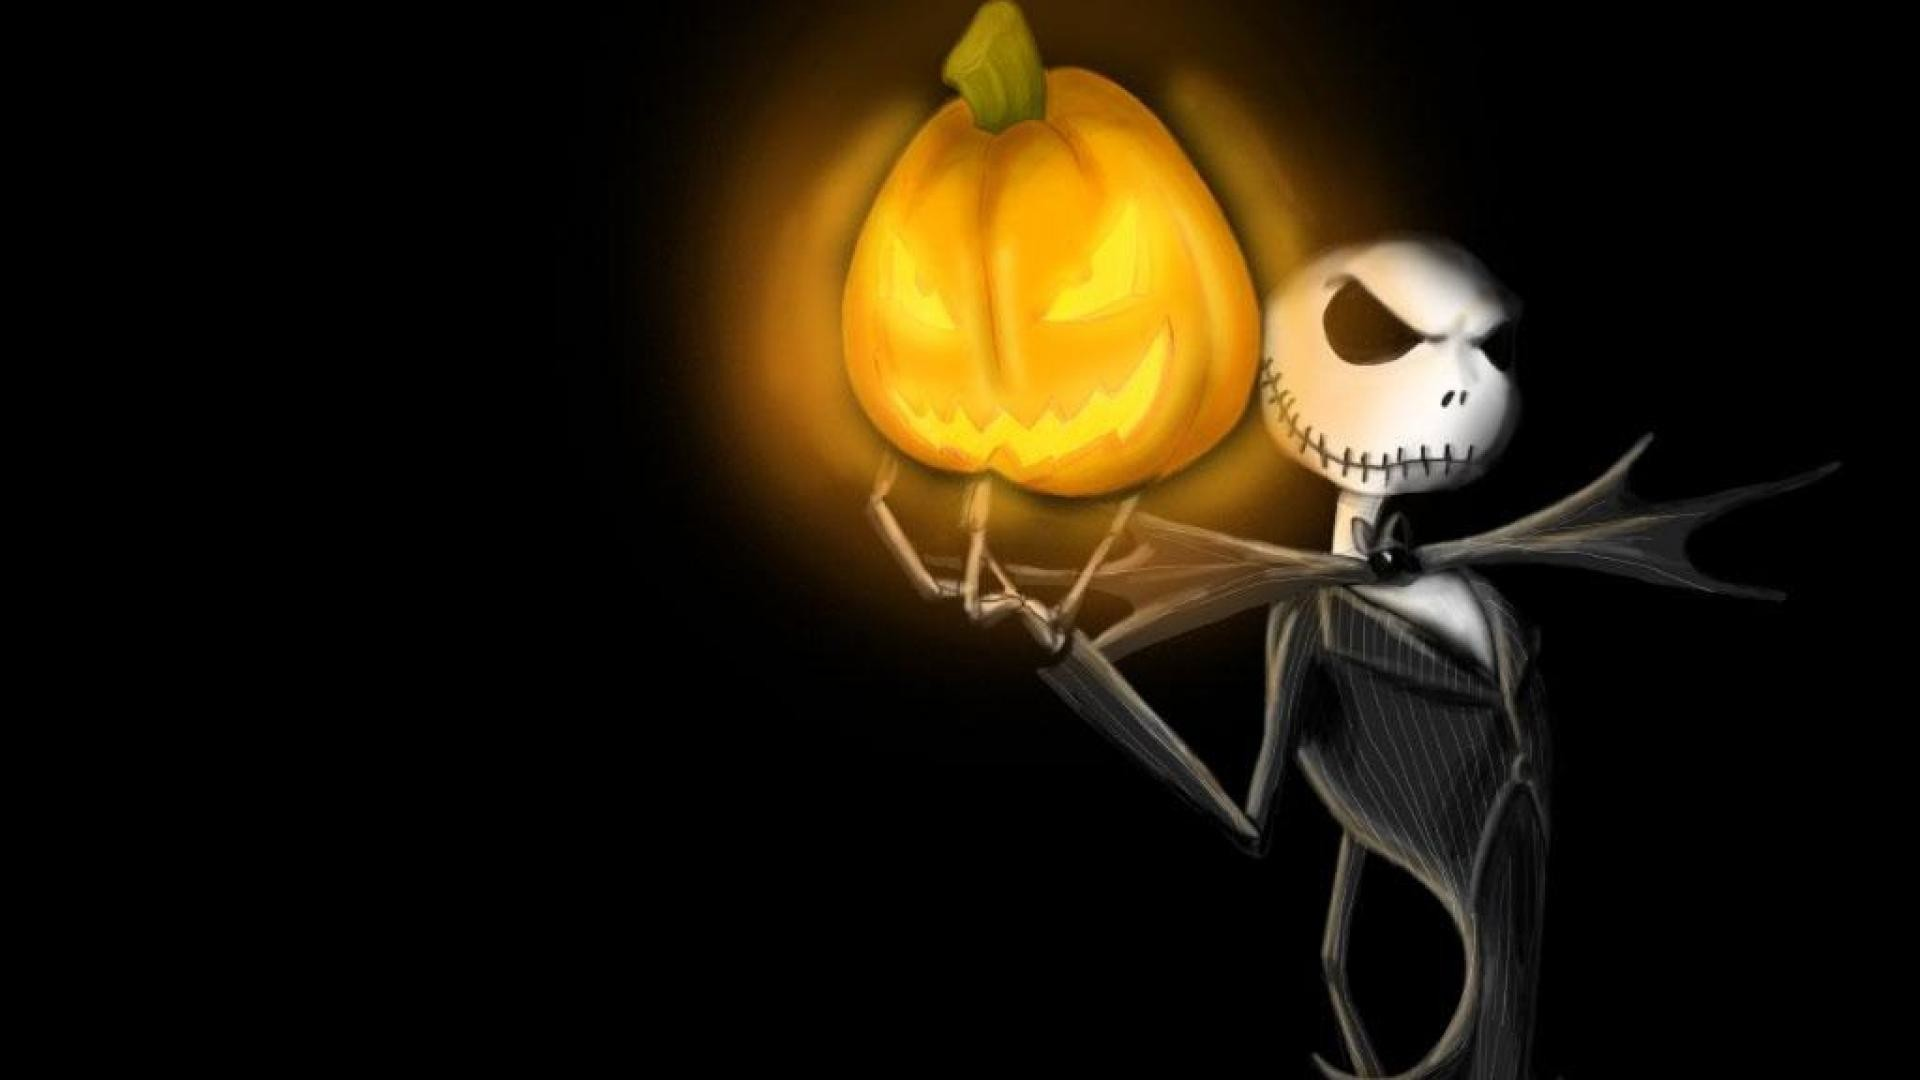 Jack And Sally Wallpapers 69 Pictures